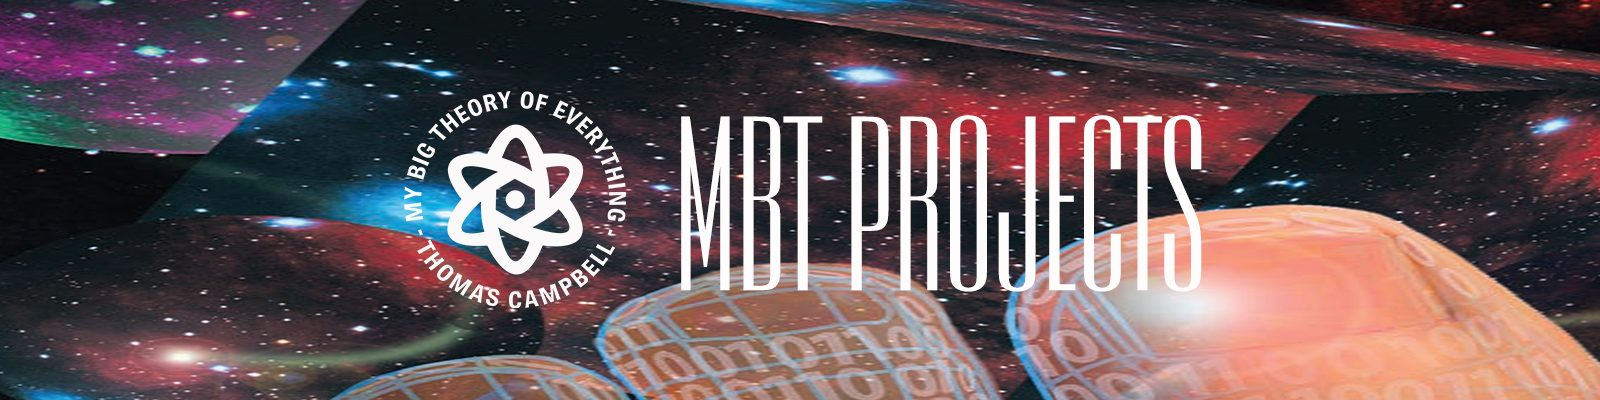 MBT-Projects-Banner-Toe-V.1.1.jpg